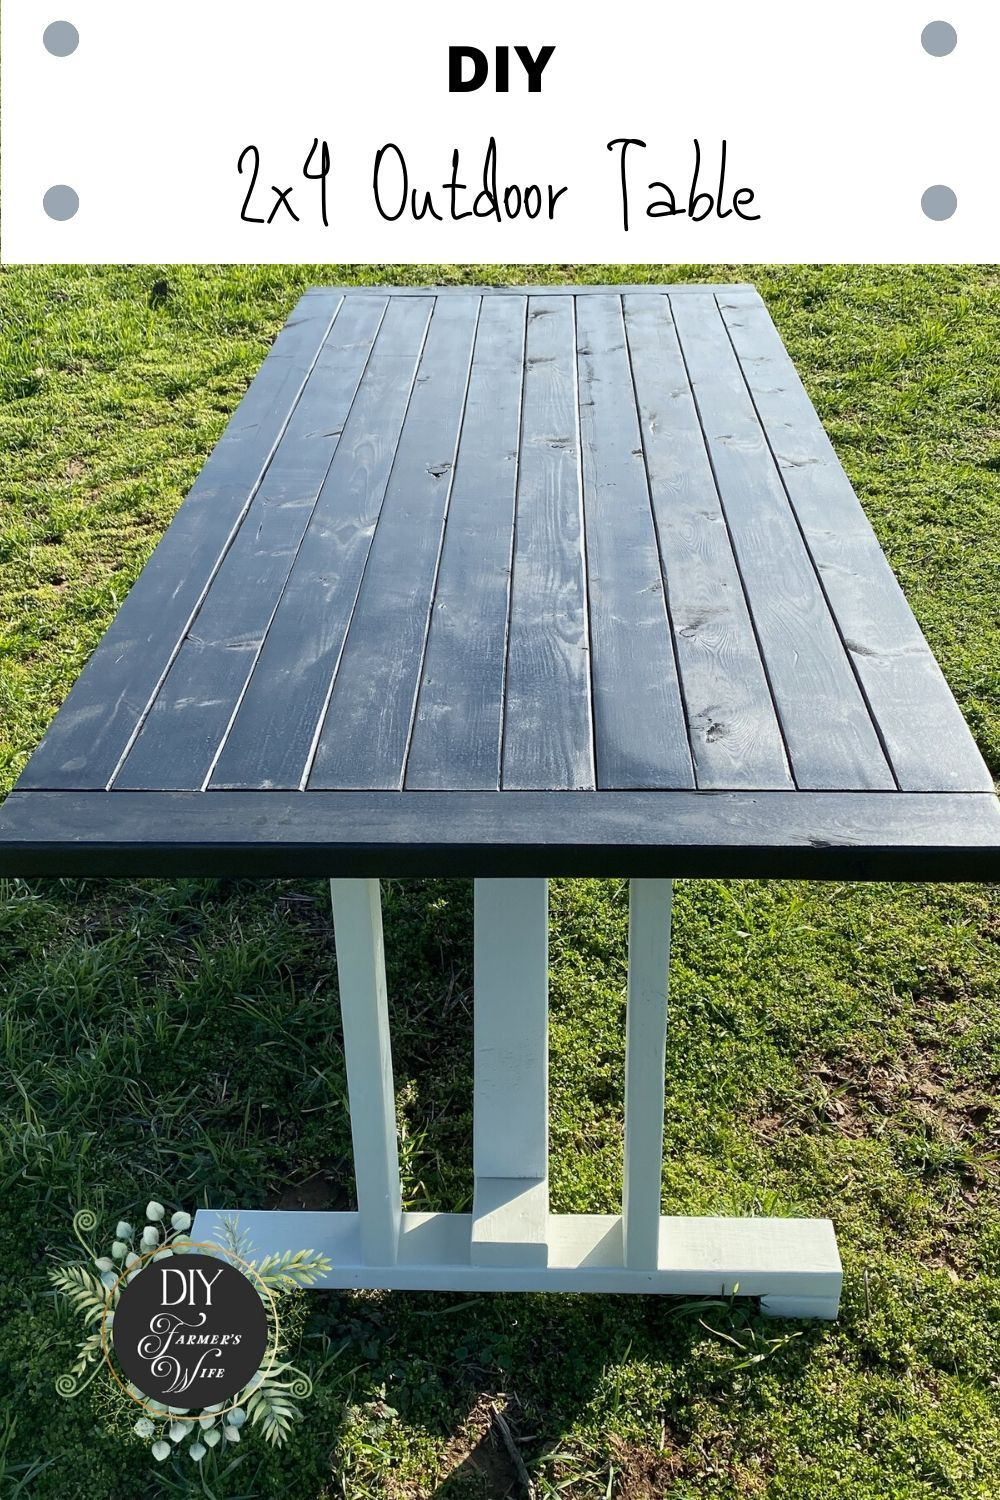 2x4 Diy Outdoor Table In 2020 Outdoor Tables Diy Outdoor